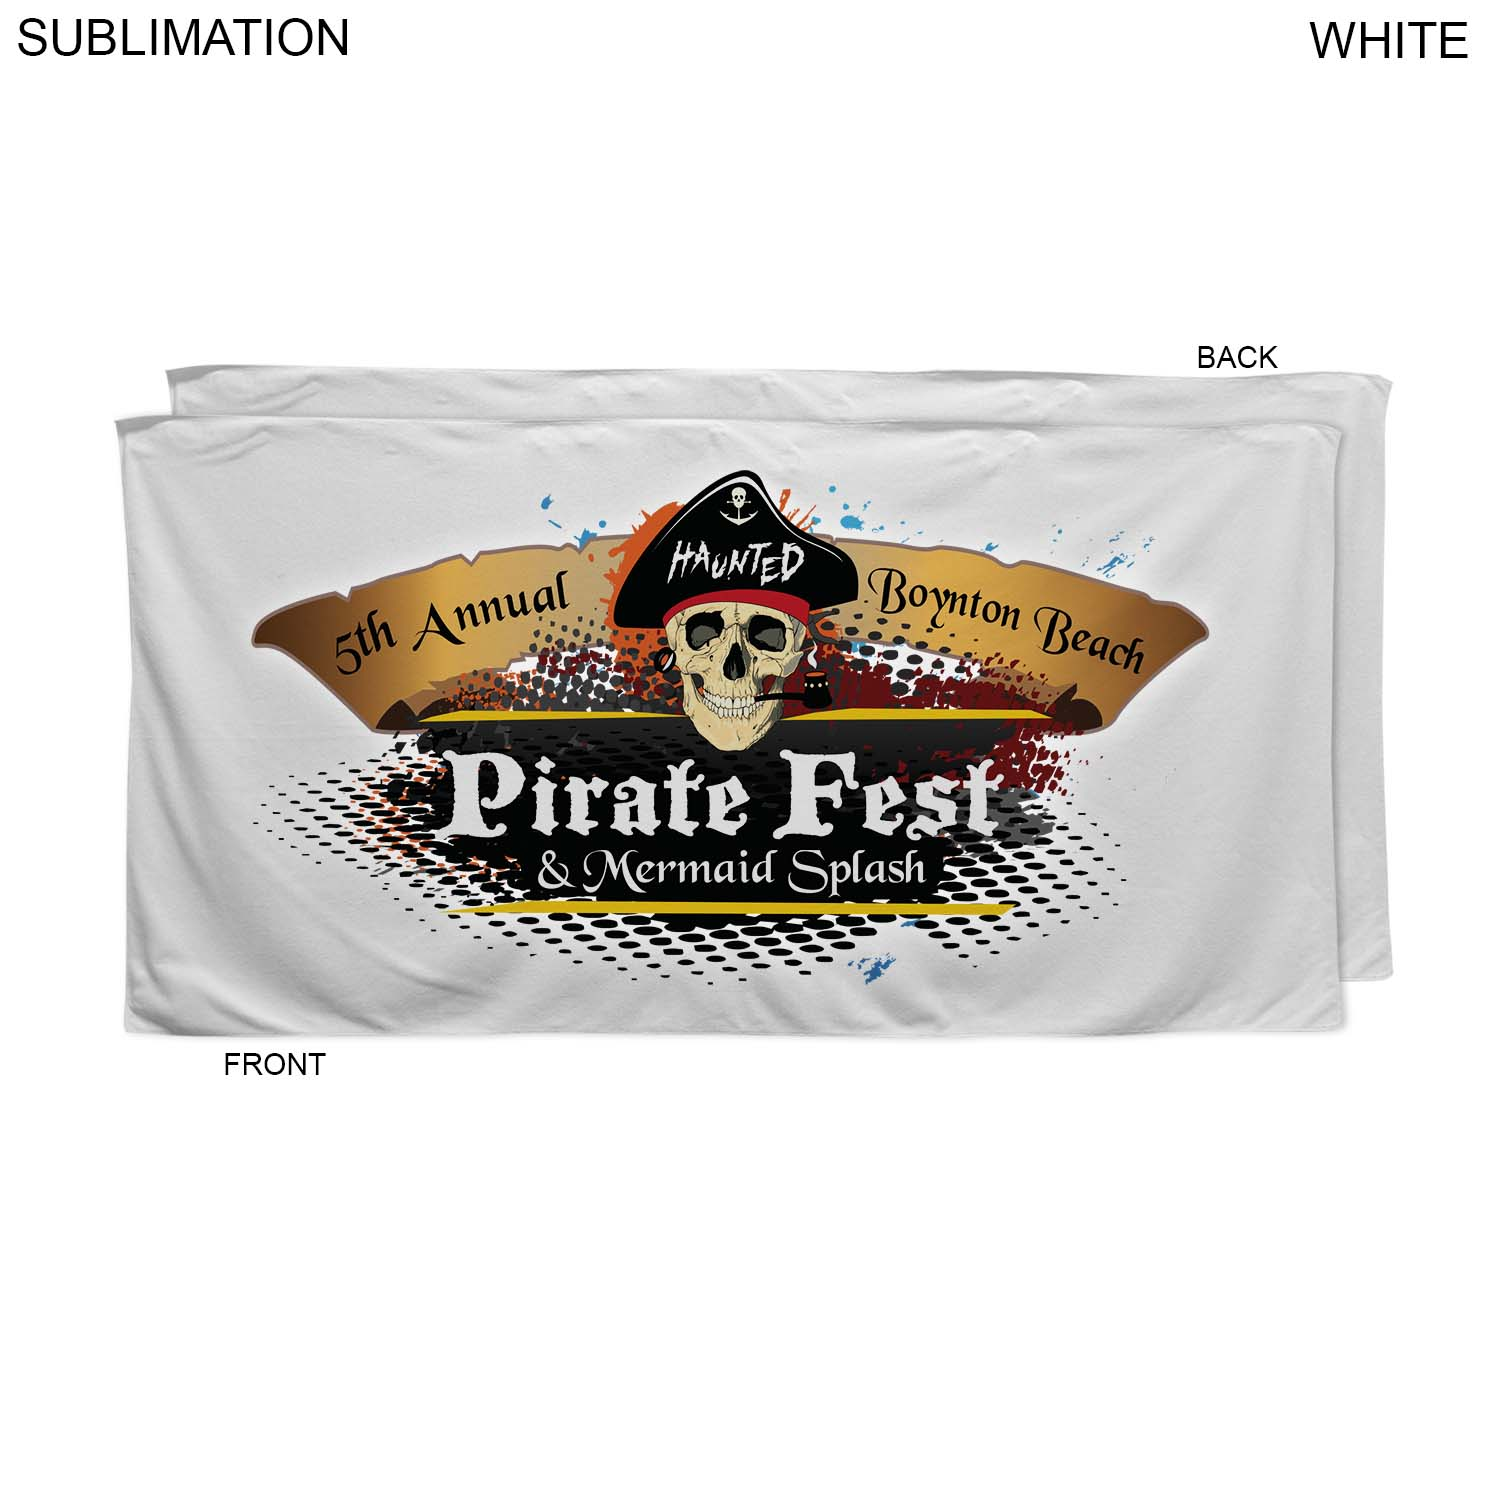 Promo Sublimated or Blank Microfiber Terry Beach Towel, 30x60